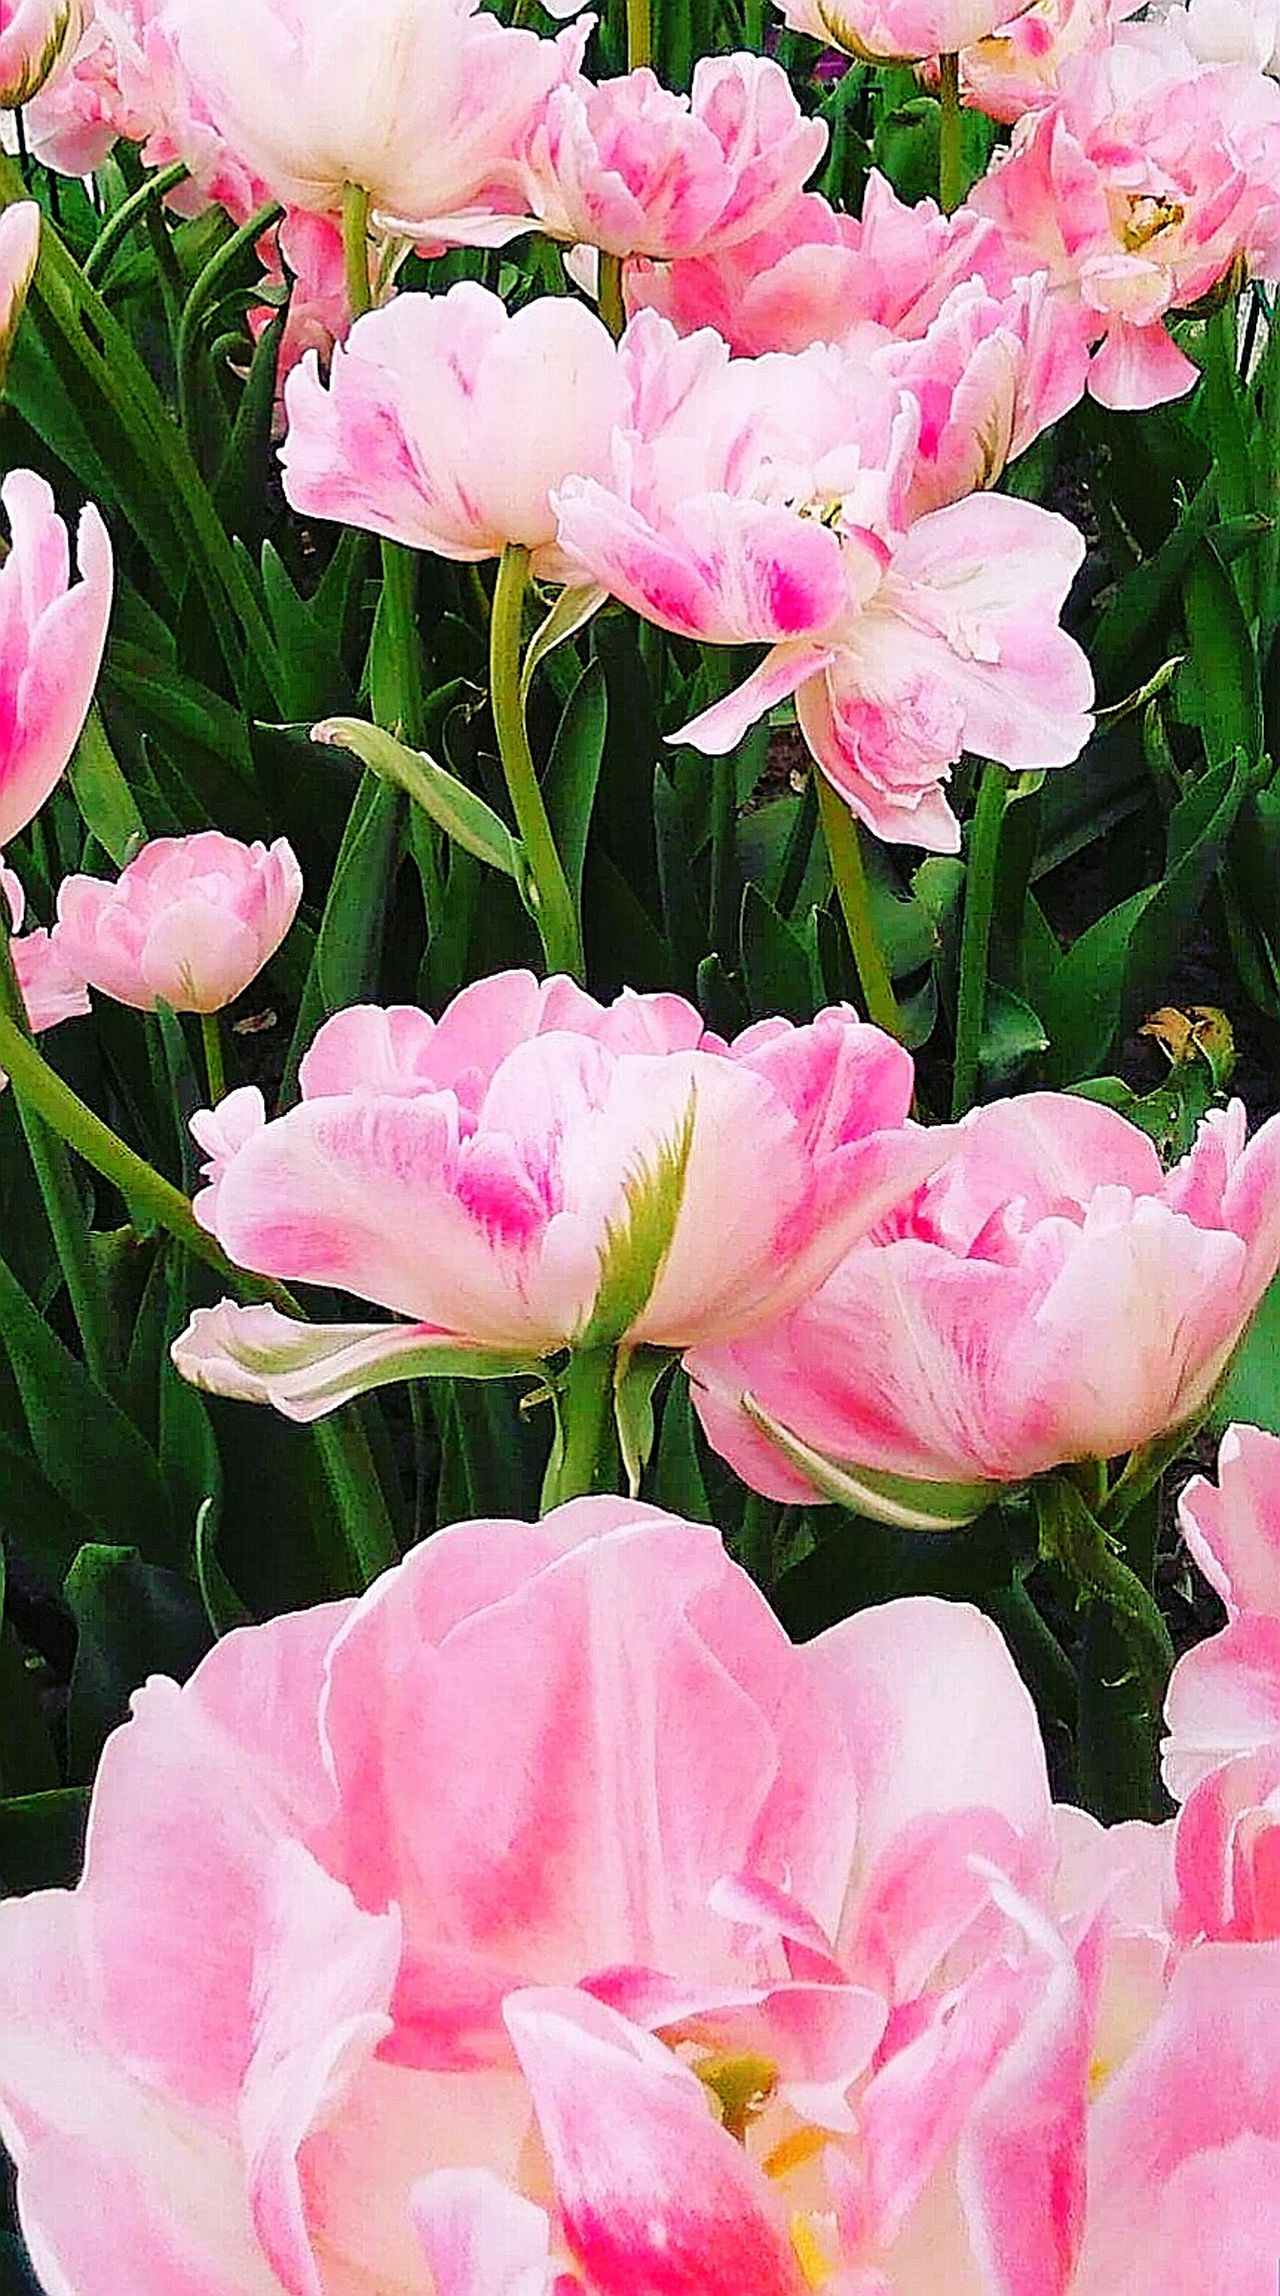 Tulips Pink Tulips Pink Flowers Pink Flower White Pink Green White Pink Green Flower Stems Flower Freshness Close-up Nature Flower Head